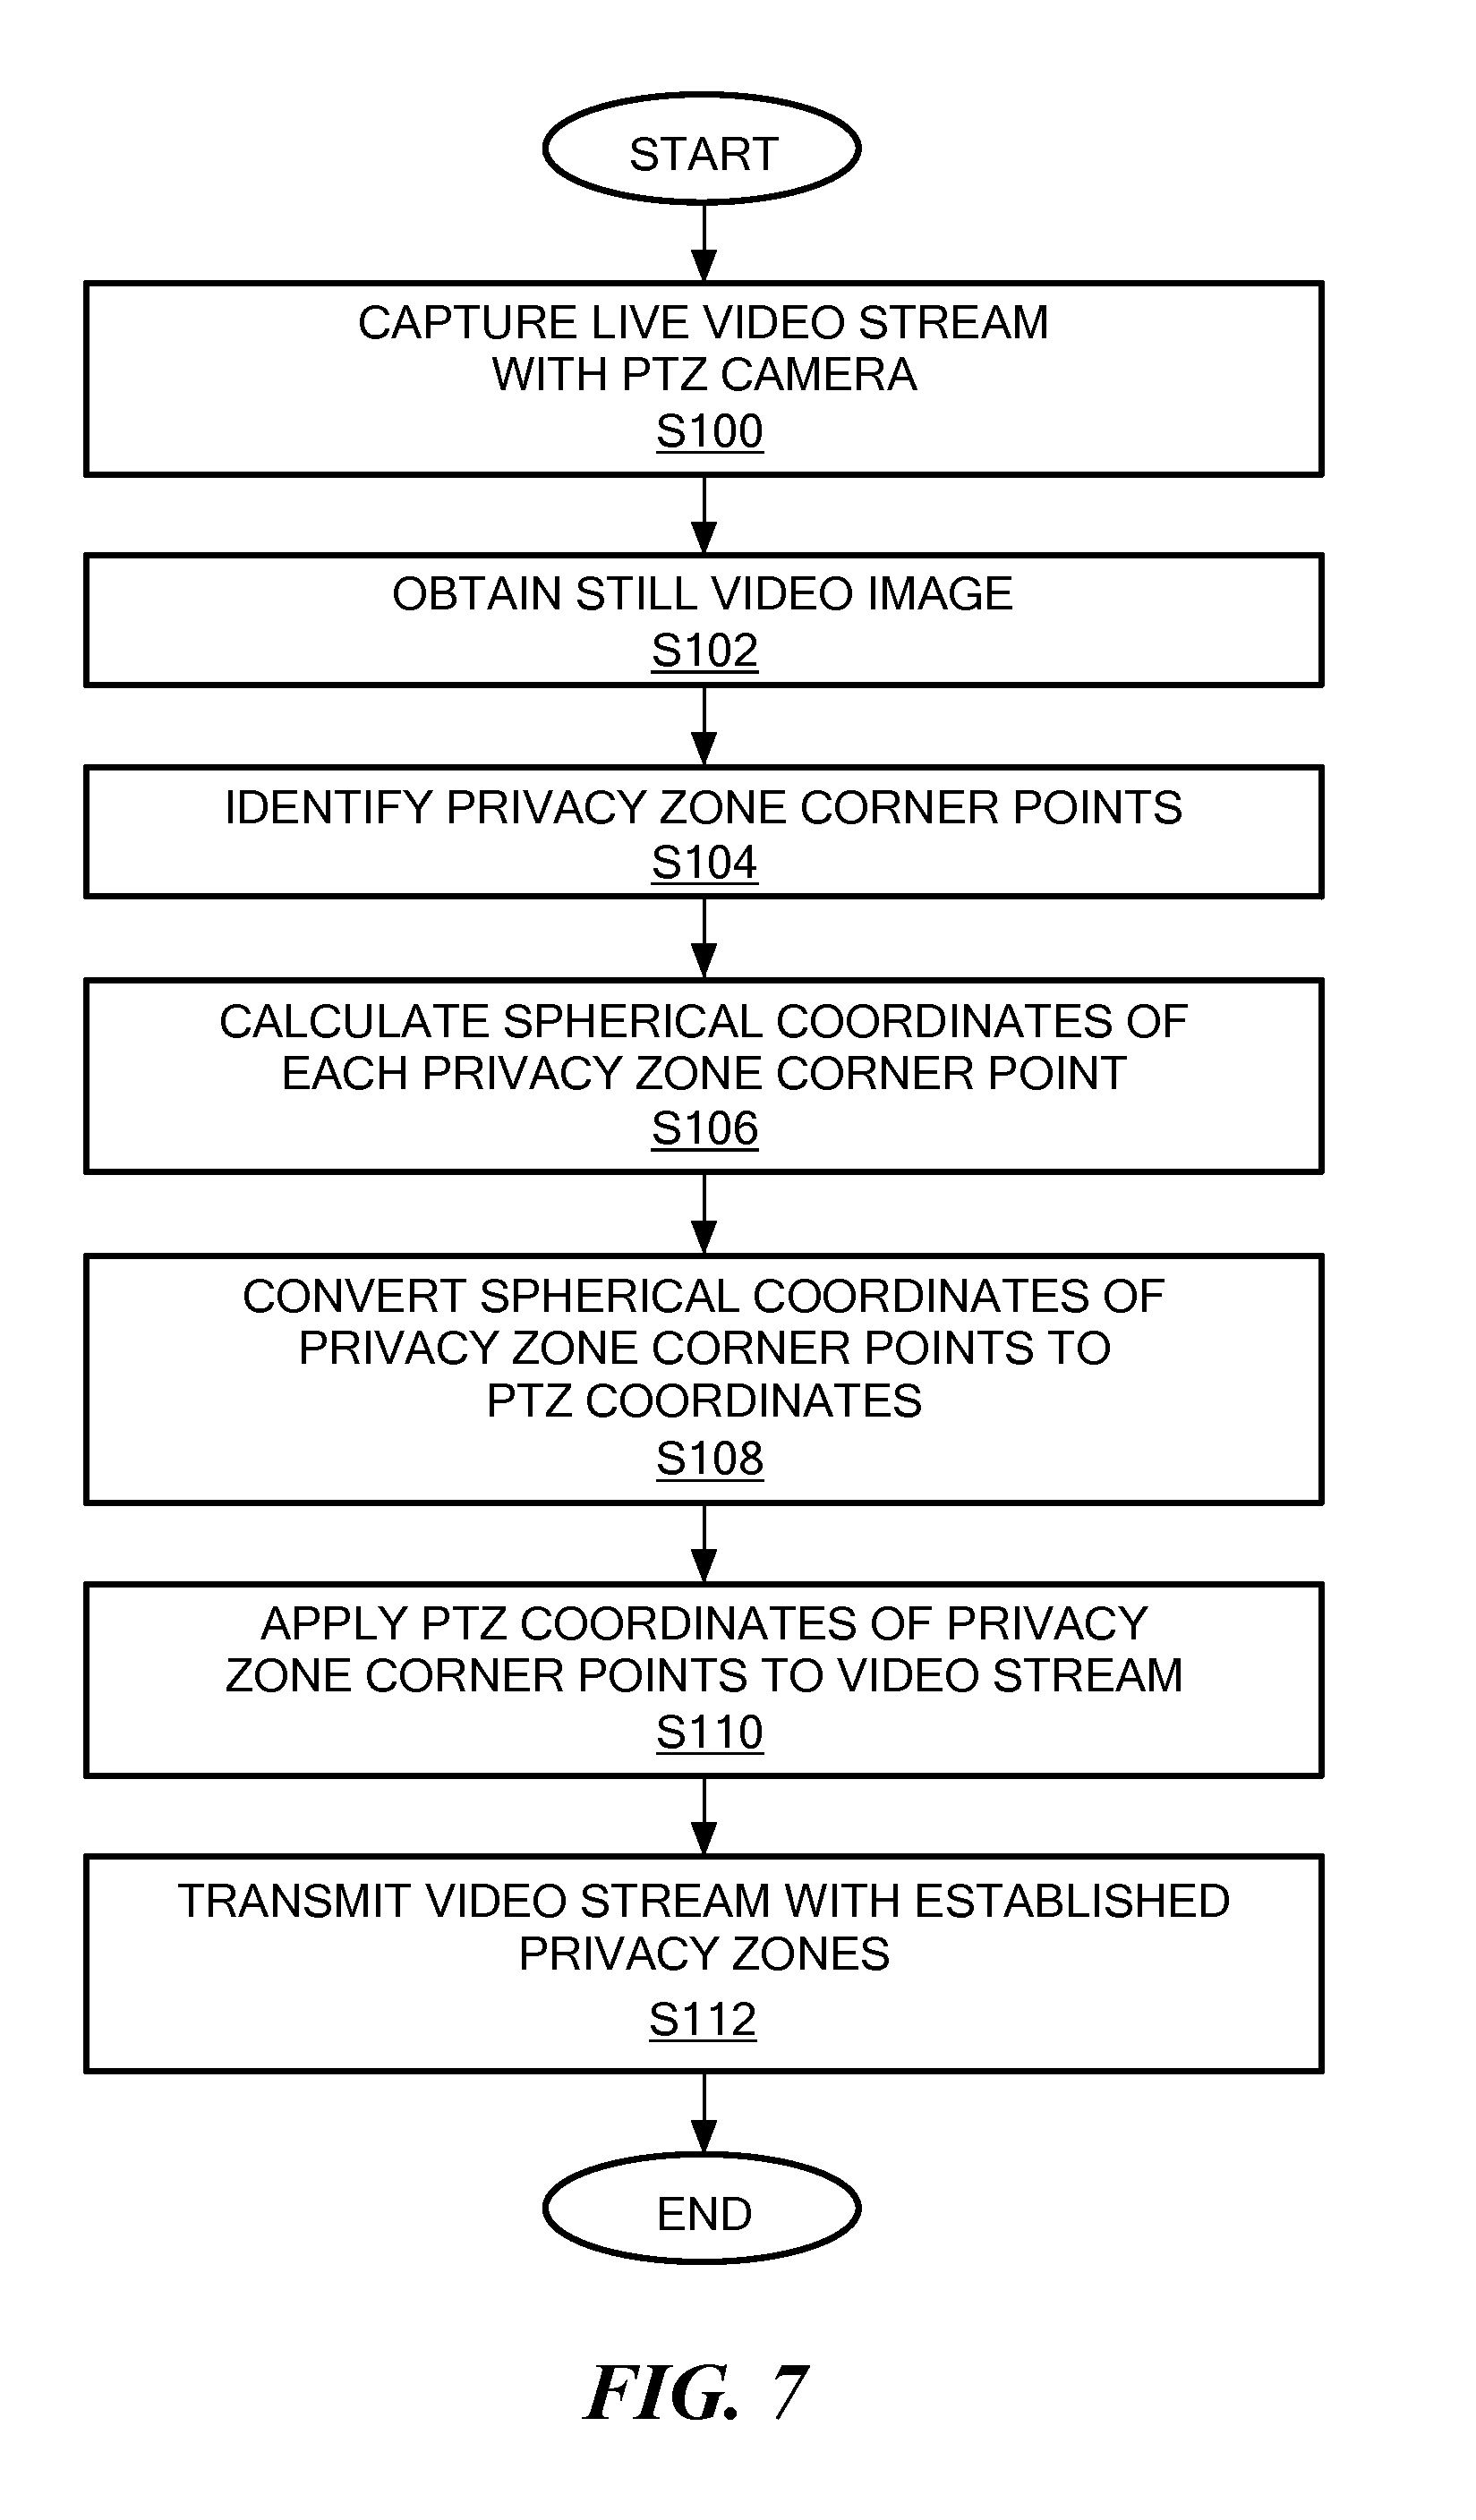 Brevet Us20120098965 Method And System For Converting Privacy Zone Sensormatic Ptz Camera Wiring Diagram Patent Drawing